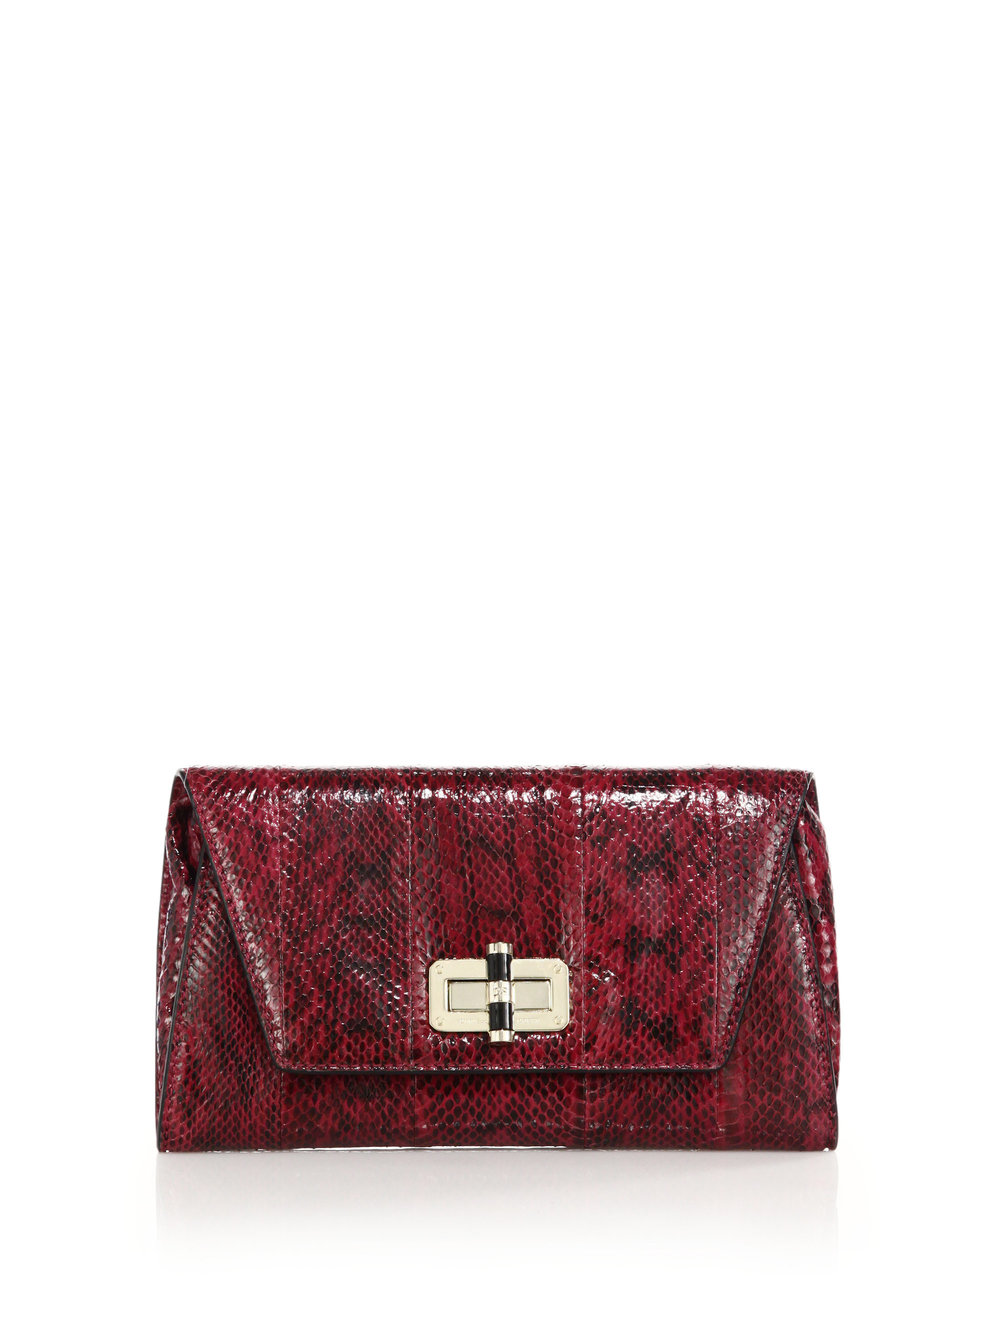 diane-von-furstenberg-cerise-440-gallery-snakeskin-clutch-red-product-0-053812082-normal.jpeg